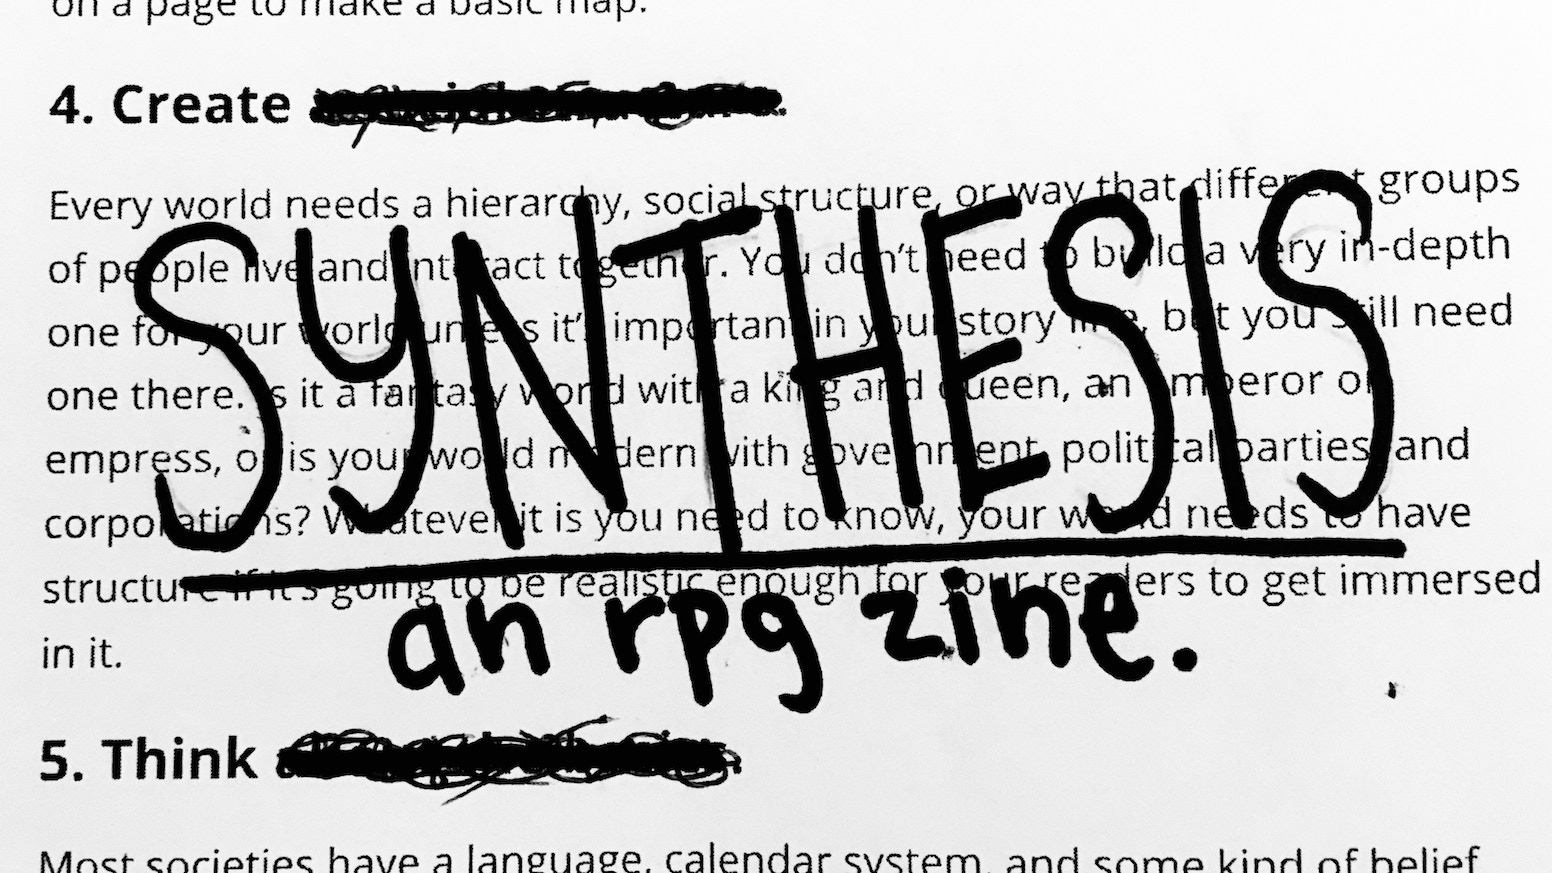 a #zinequest full of mini-rpgs about metatextuality, perspective, and creating new meanings.